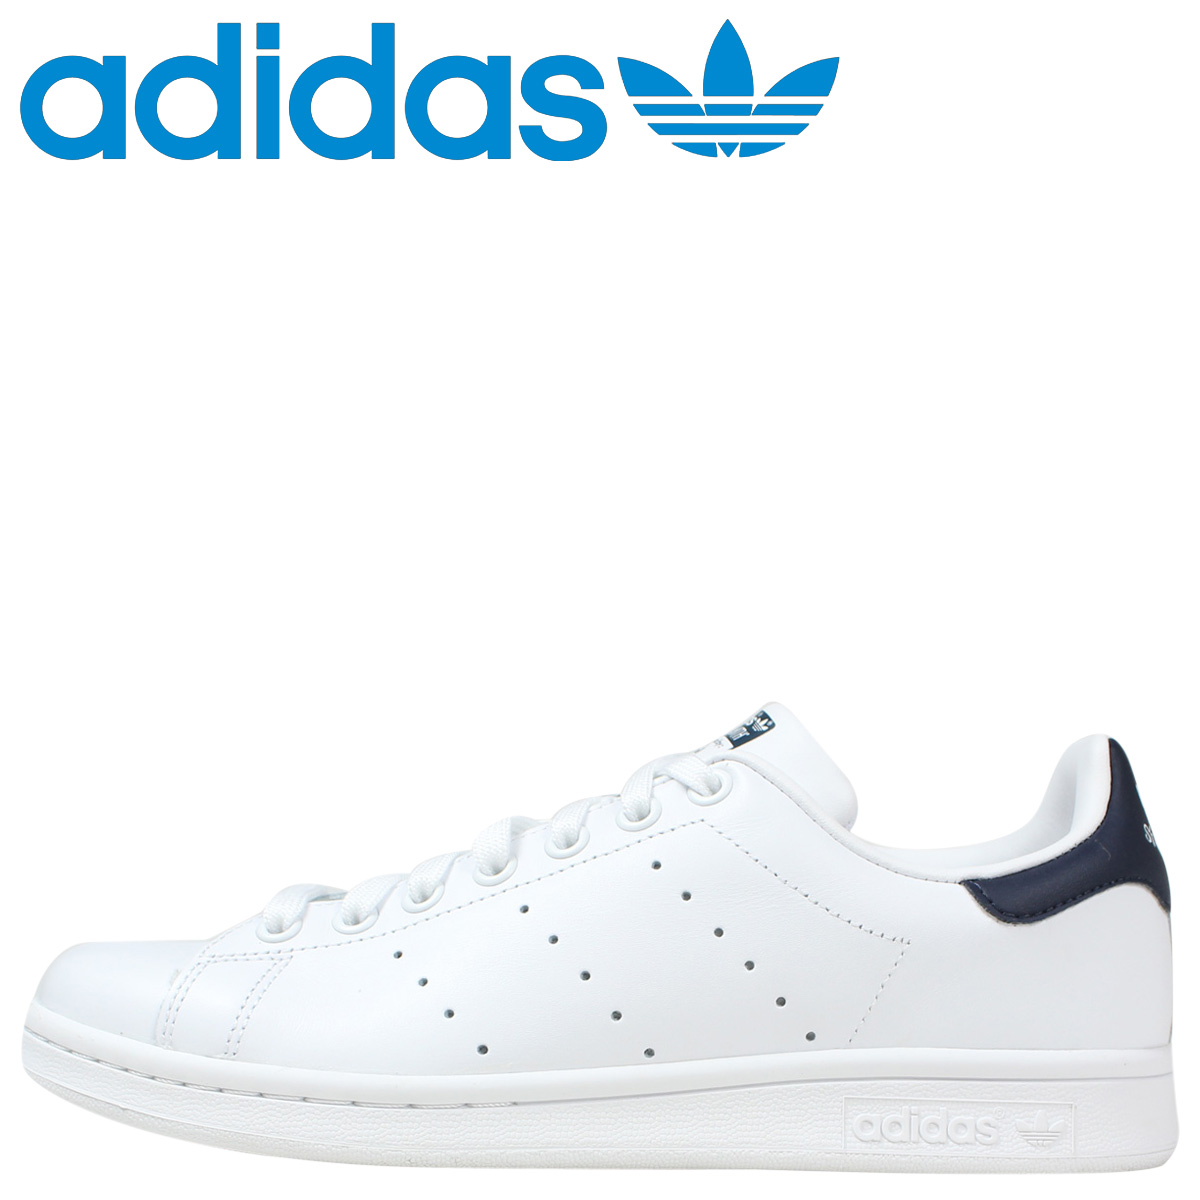 73f500da Adidas originals adidas Originals STAN SMITH sneakers Stan Smith leather  men's women's M20325 White x Navy ...